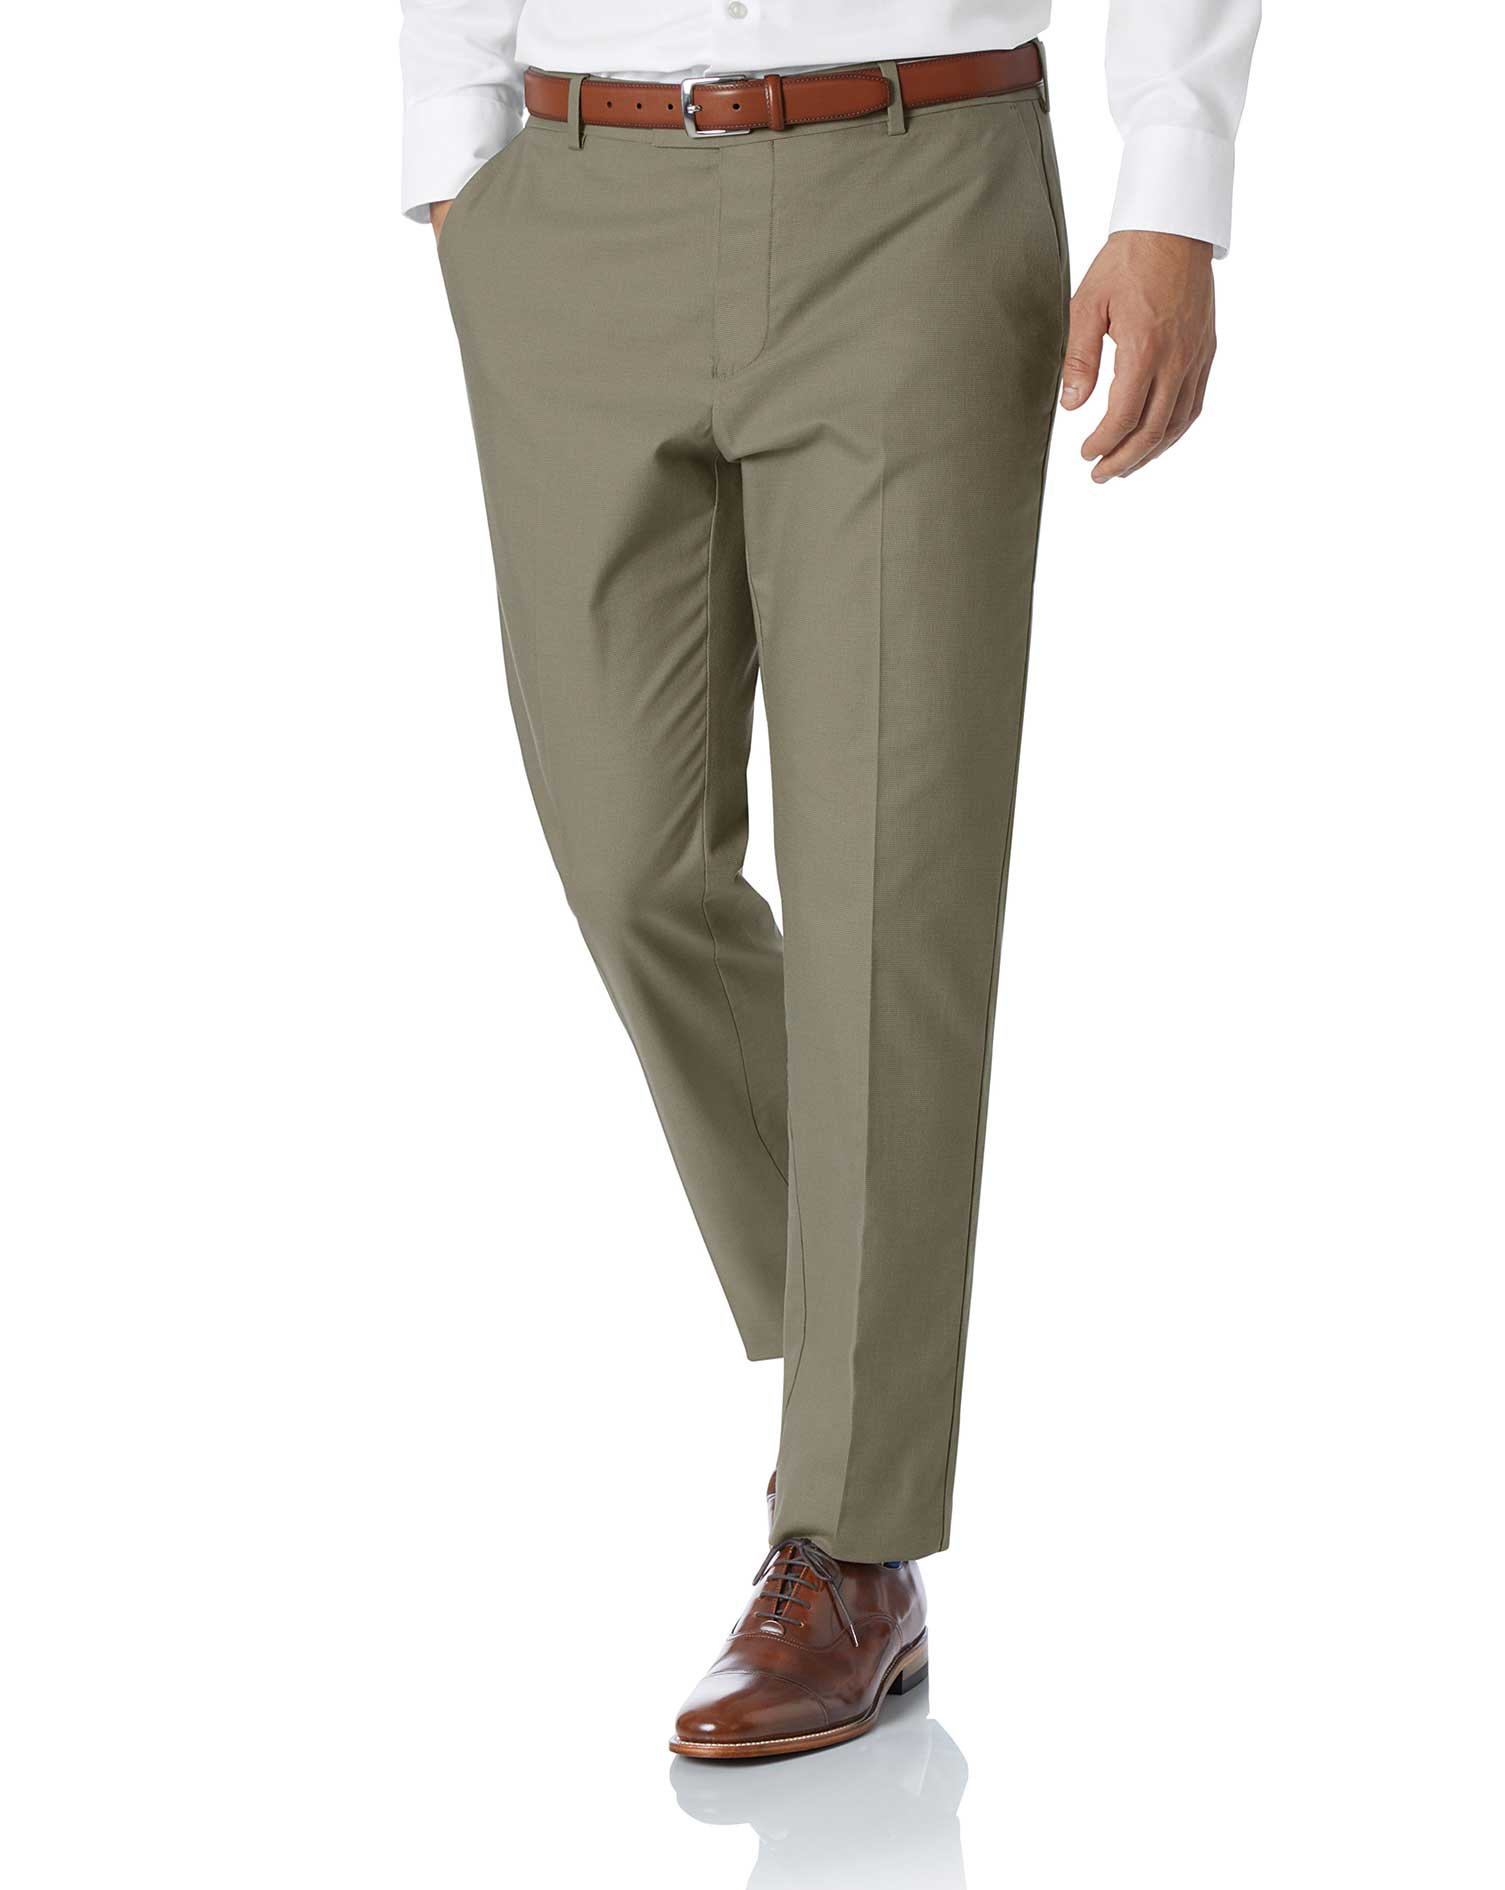 Olive Slim Fit Stretch Non-Iron Trousers Size W32 L34 by Charles Tyrwhitt